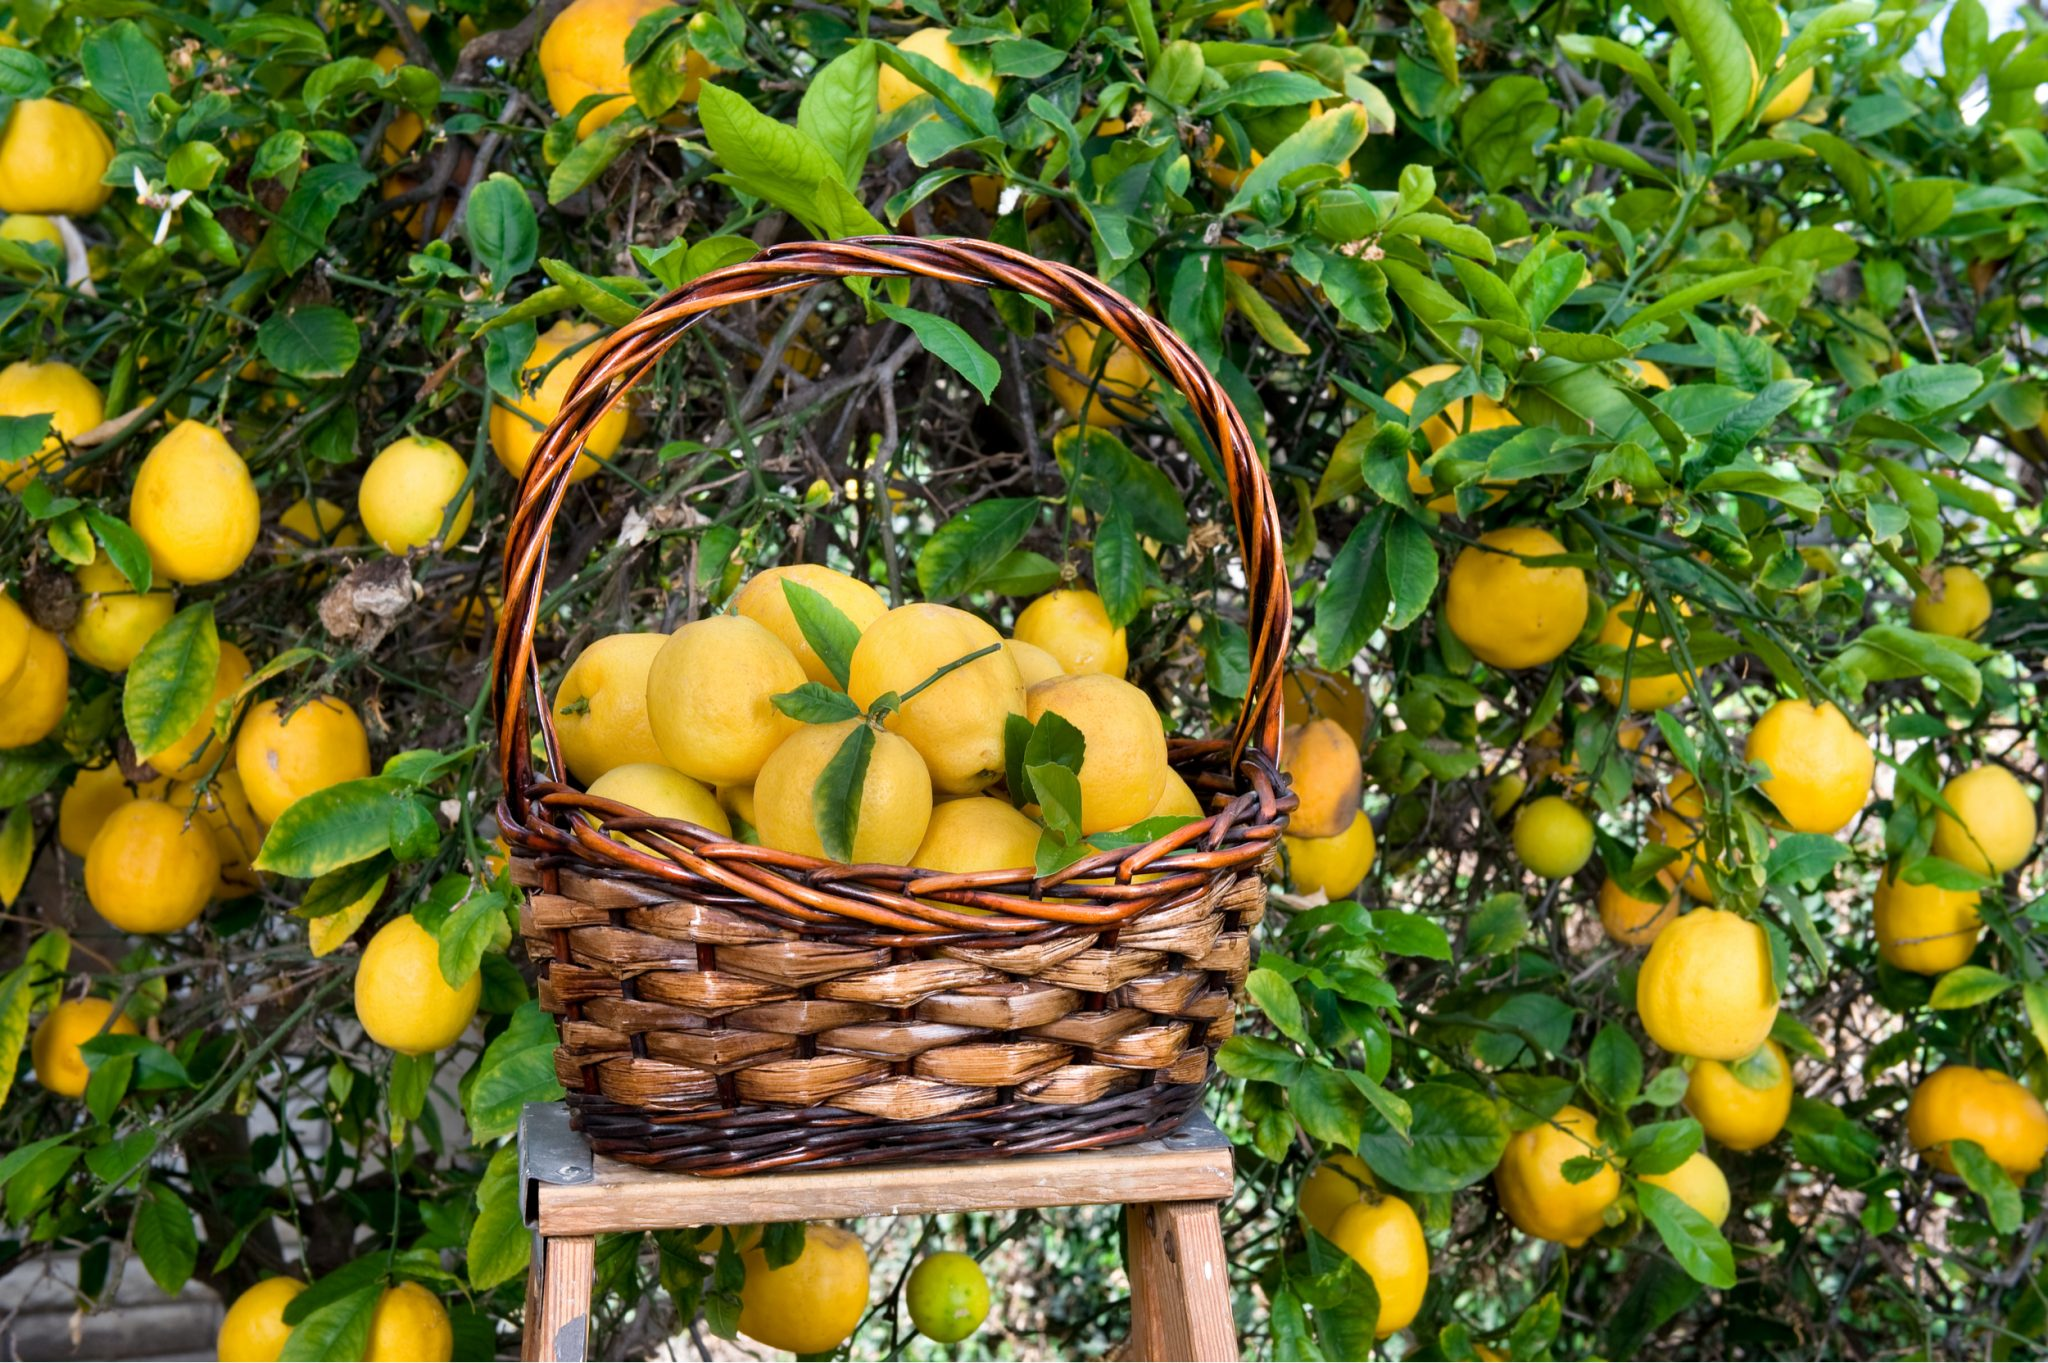 How to Harvest Citrus Fruits